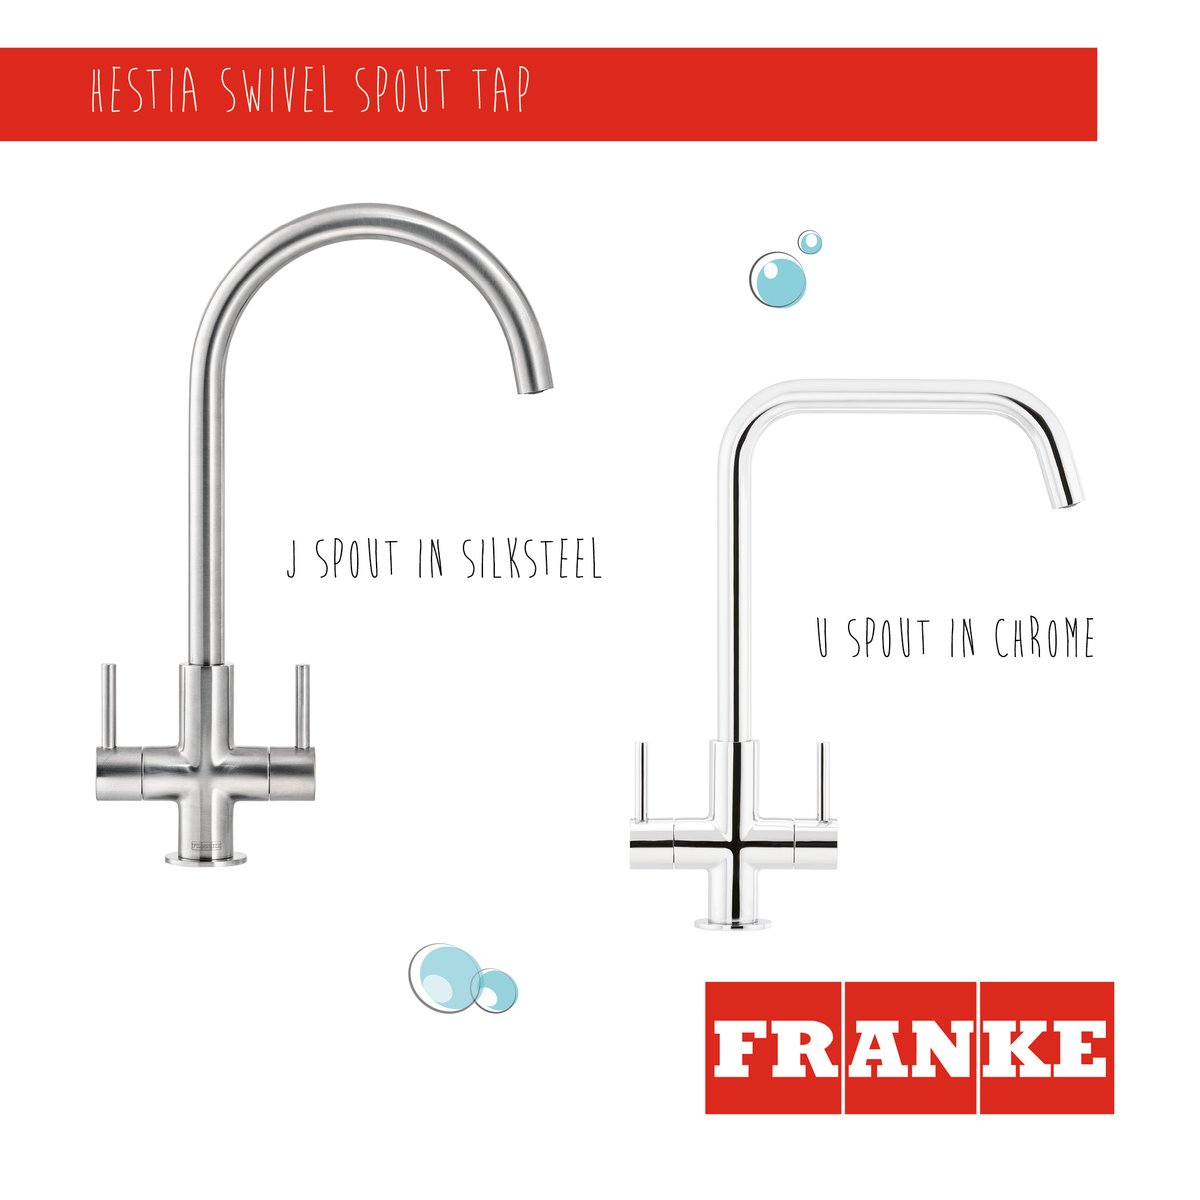 Exuding modern elegance, the Hestia tap in our chic new brushed SilkSteel finish gives a beautiful modern aesthetic which offers an alternative to the existing classic Chrome model. franke.com/content/corpor… #moderndesign #kitchenideas